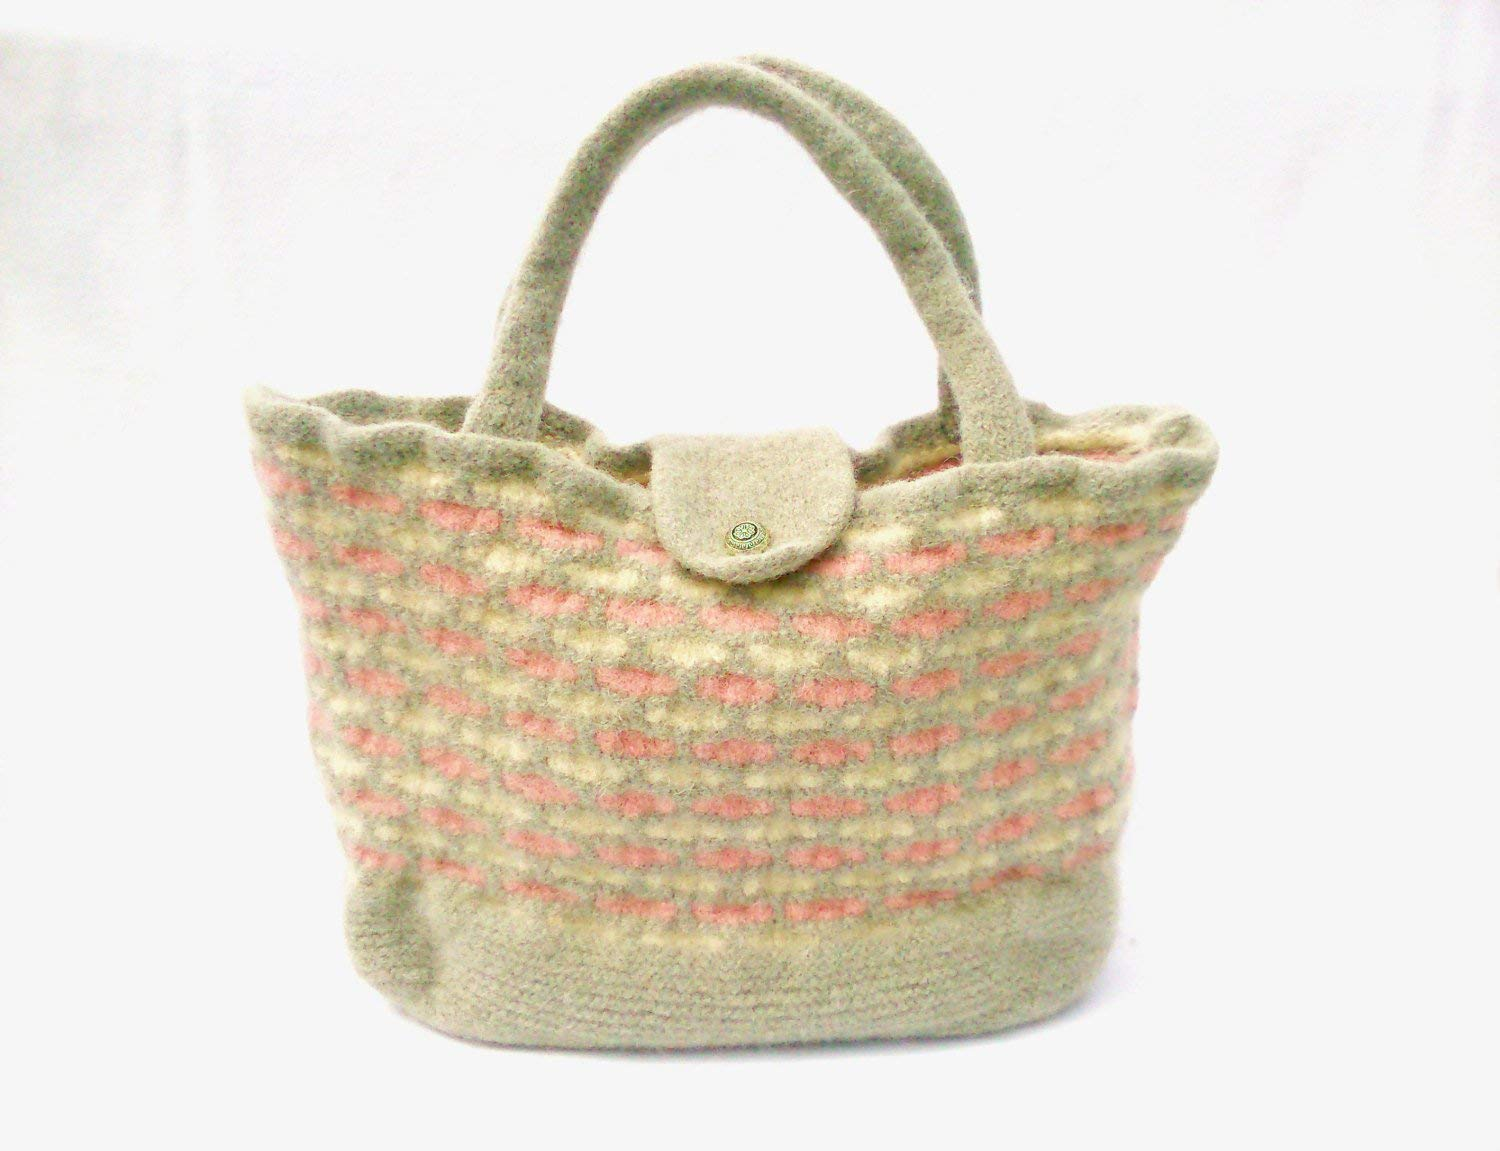 Felt bag, felted handbag, handmade bag, large tote bag, shoulder bag, work bag, overnight bag, folk accessories, hippie bag, boho bag, folk.